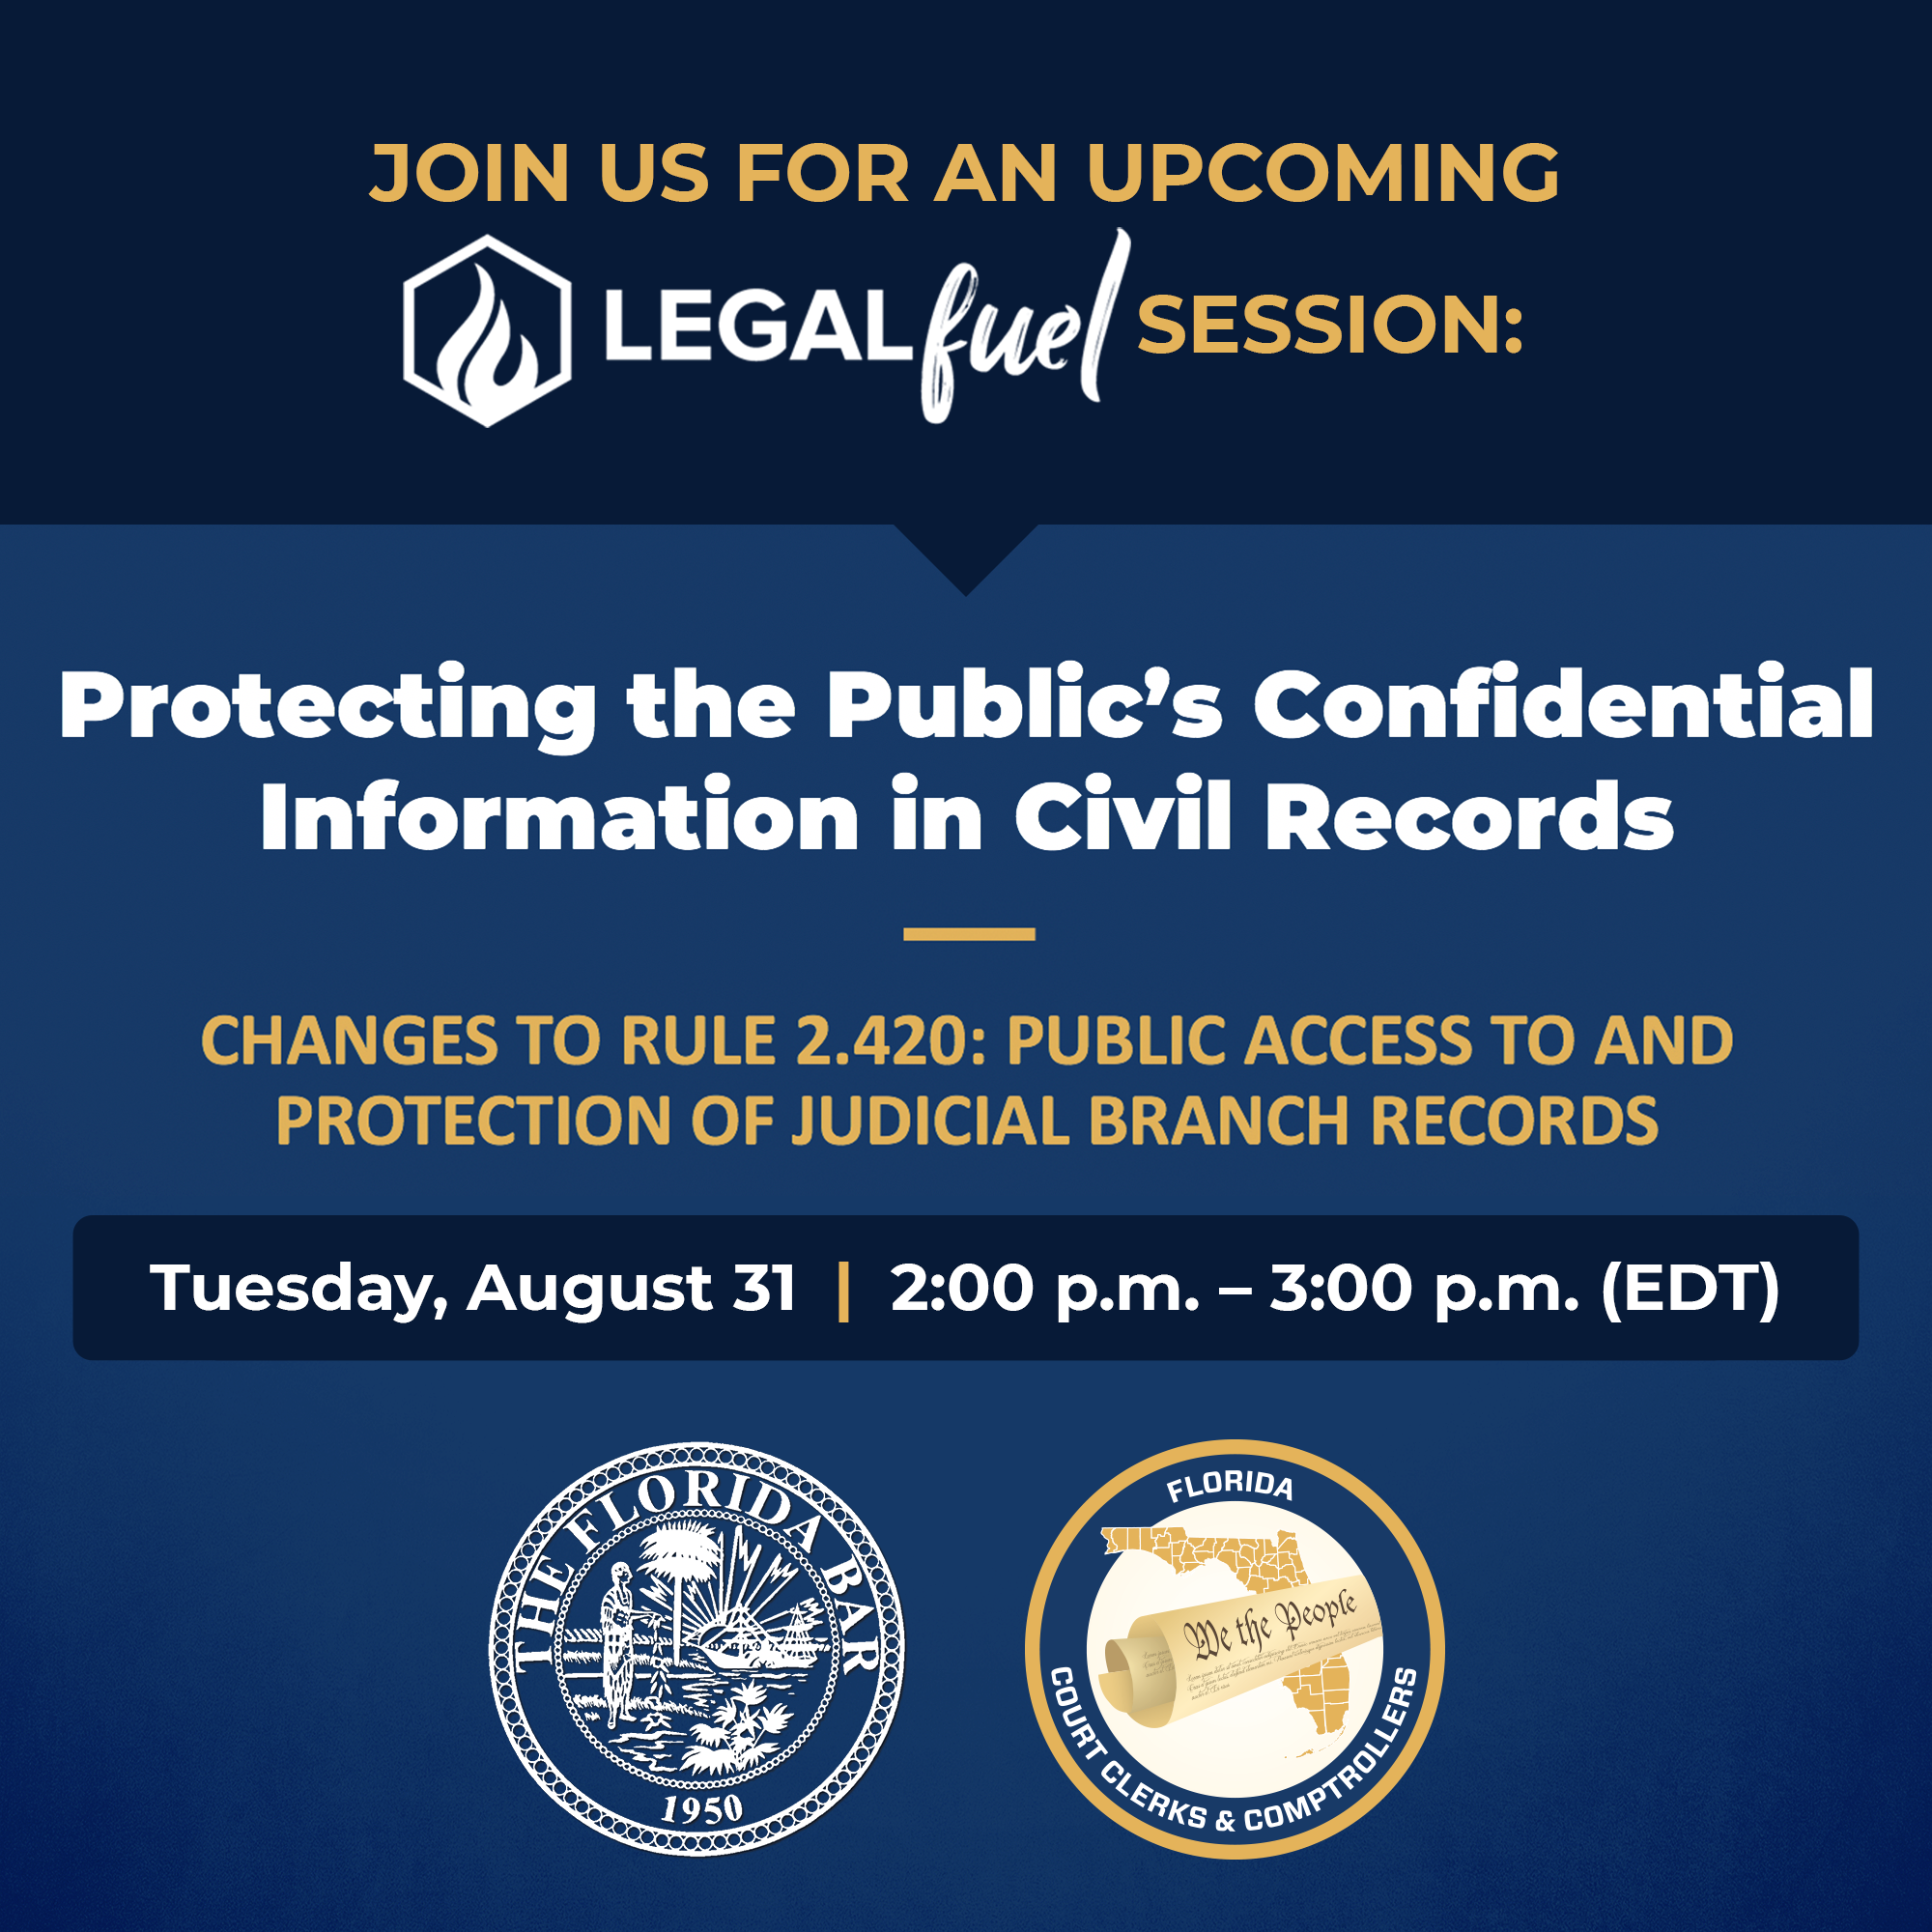 Protecting the Public's Confidential Information in Civil Records flyer